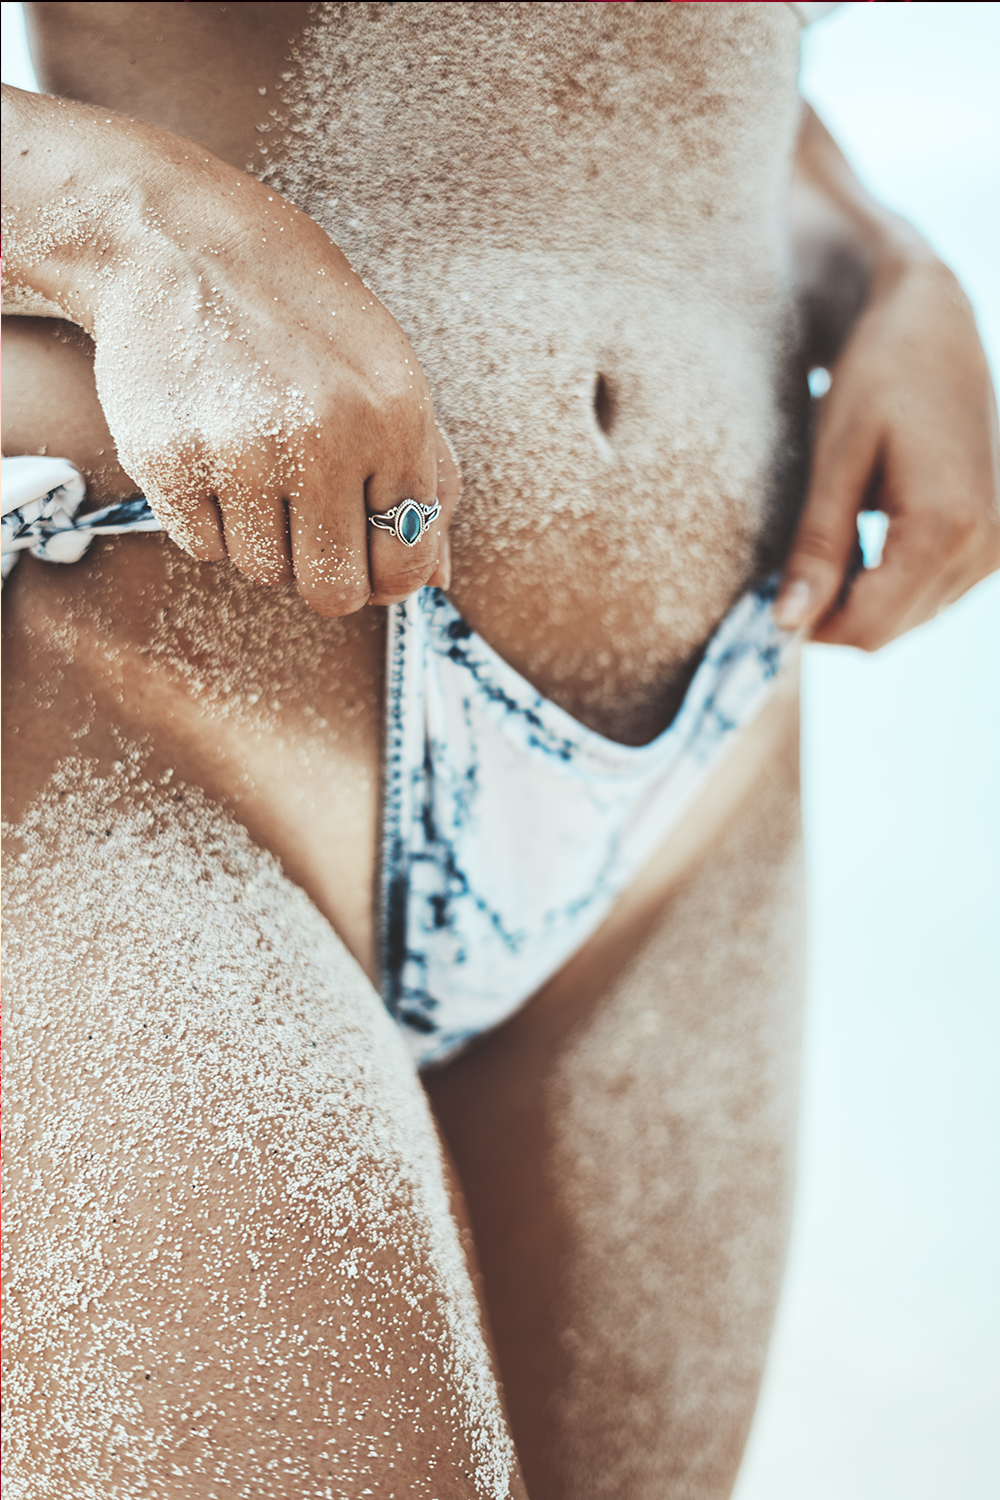 The Difference between Spray Tanning and Precision Airbrushing